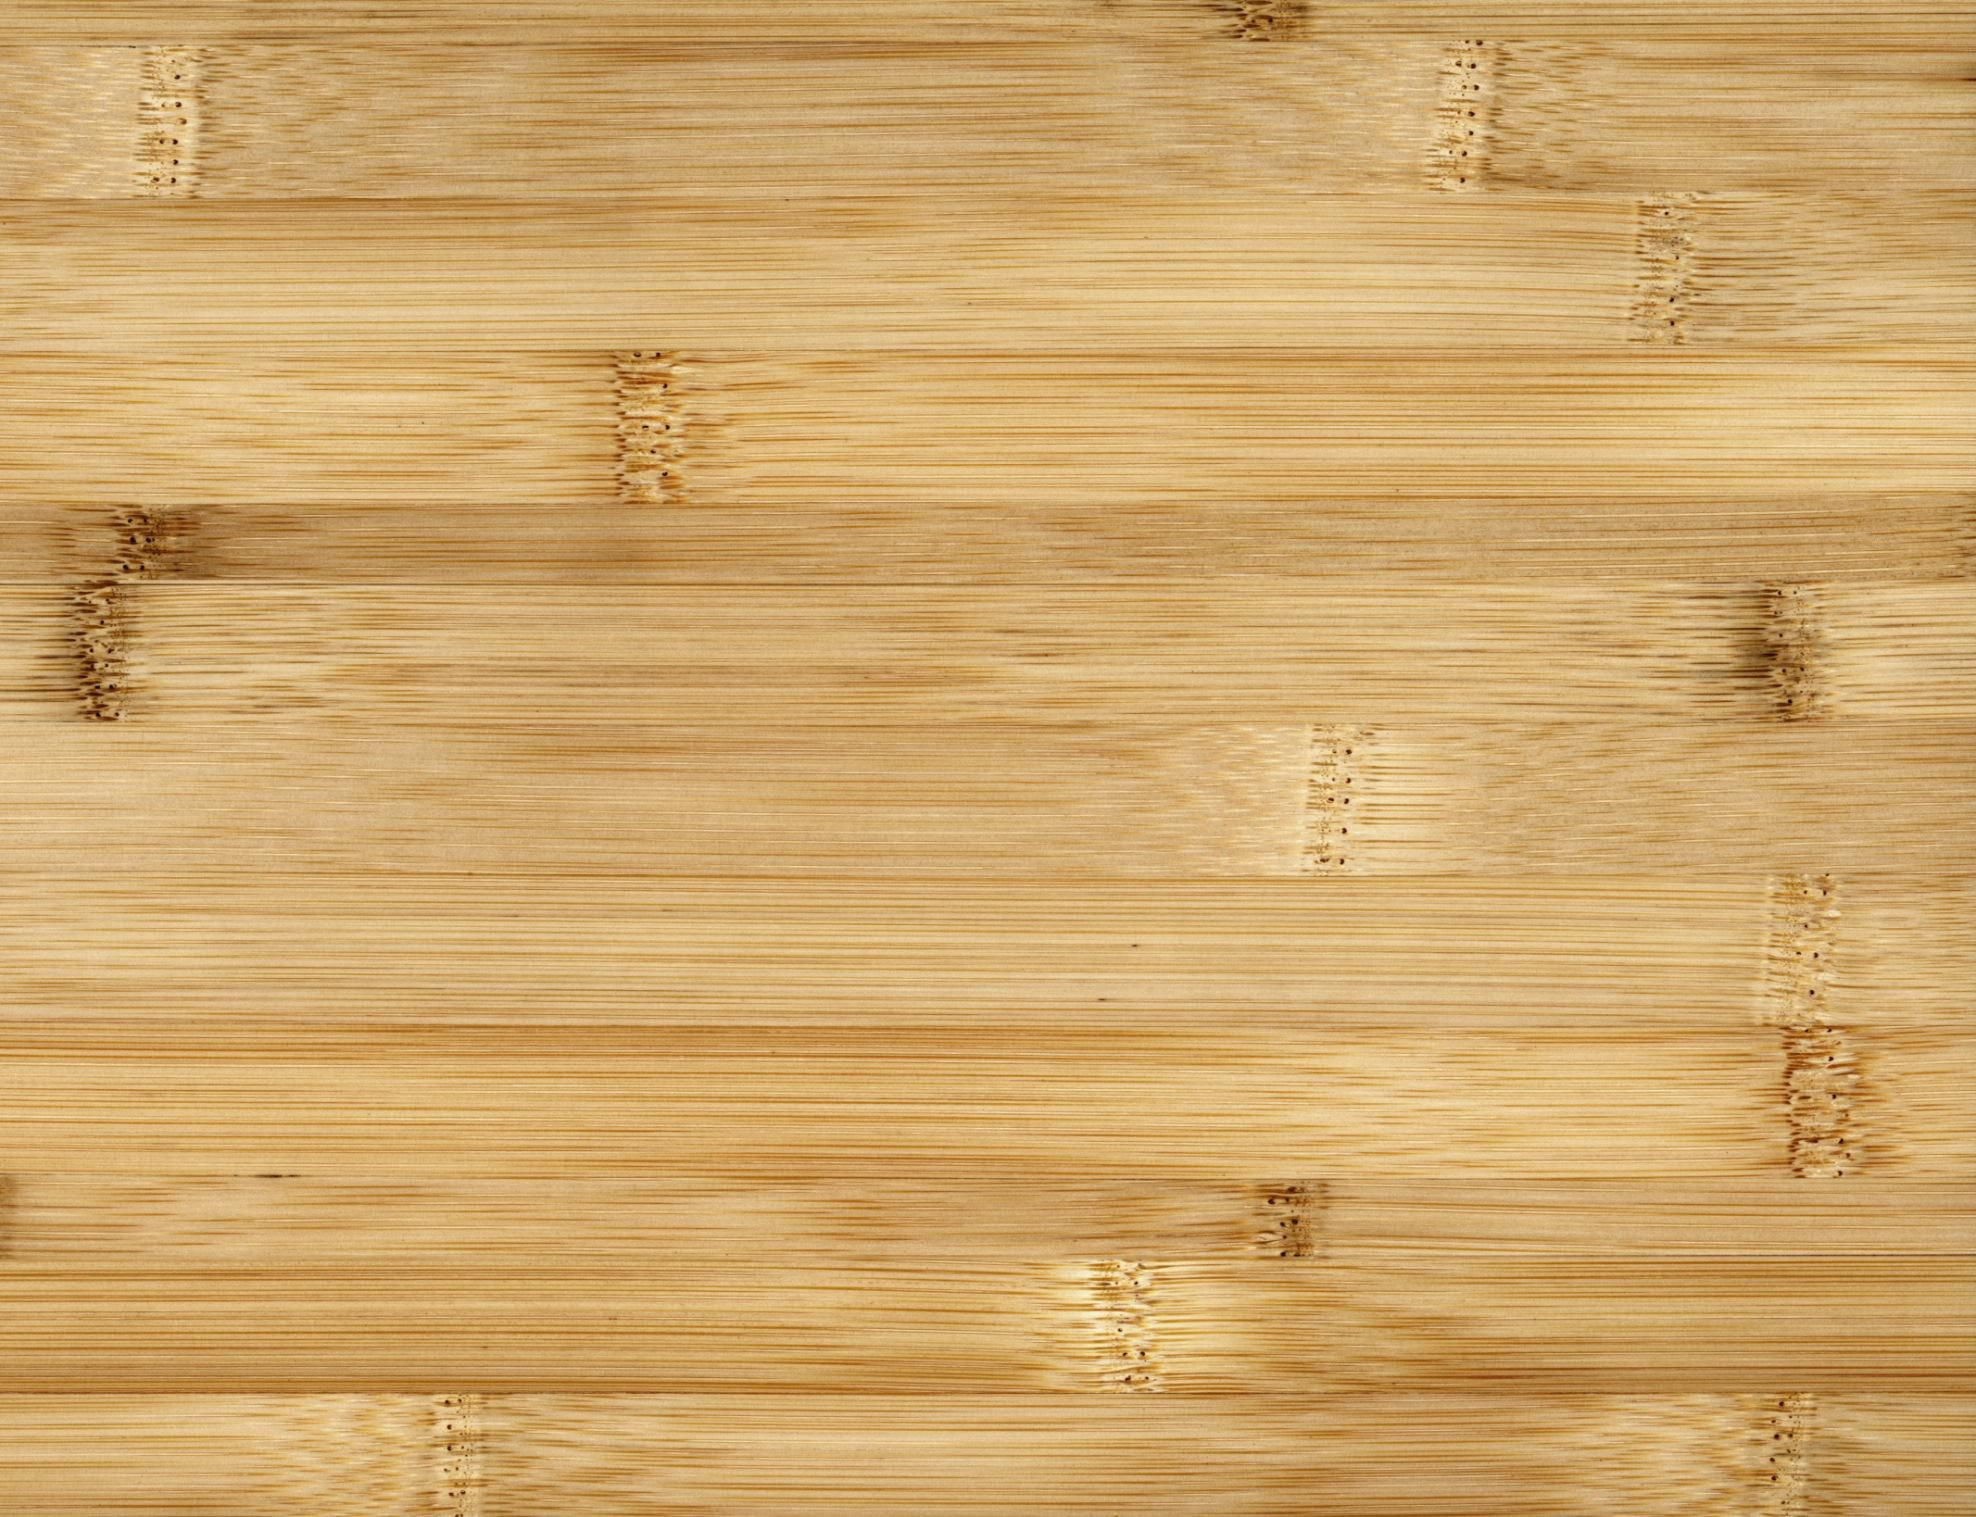 hardwood floor cleaning products of how to clean bamboo flooring pertaining to 200266305 001 56a2fd815f9b58b7d0d000cd